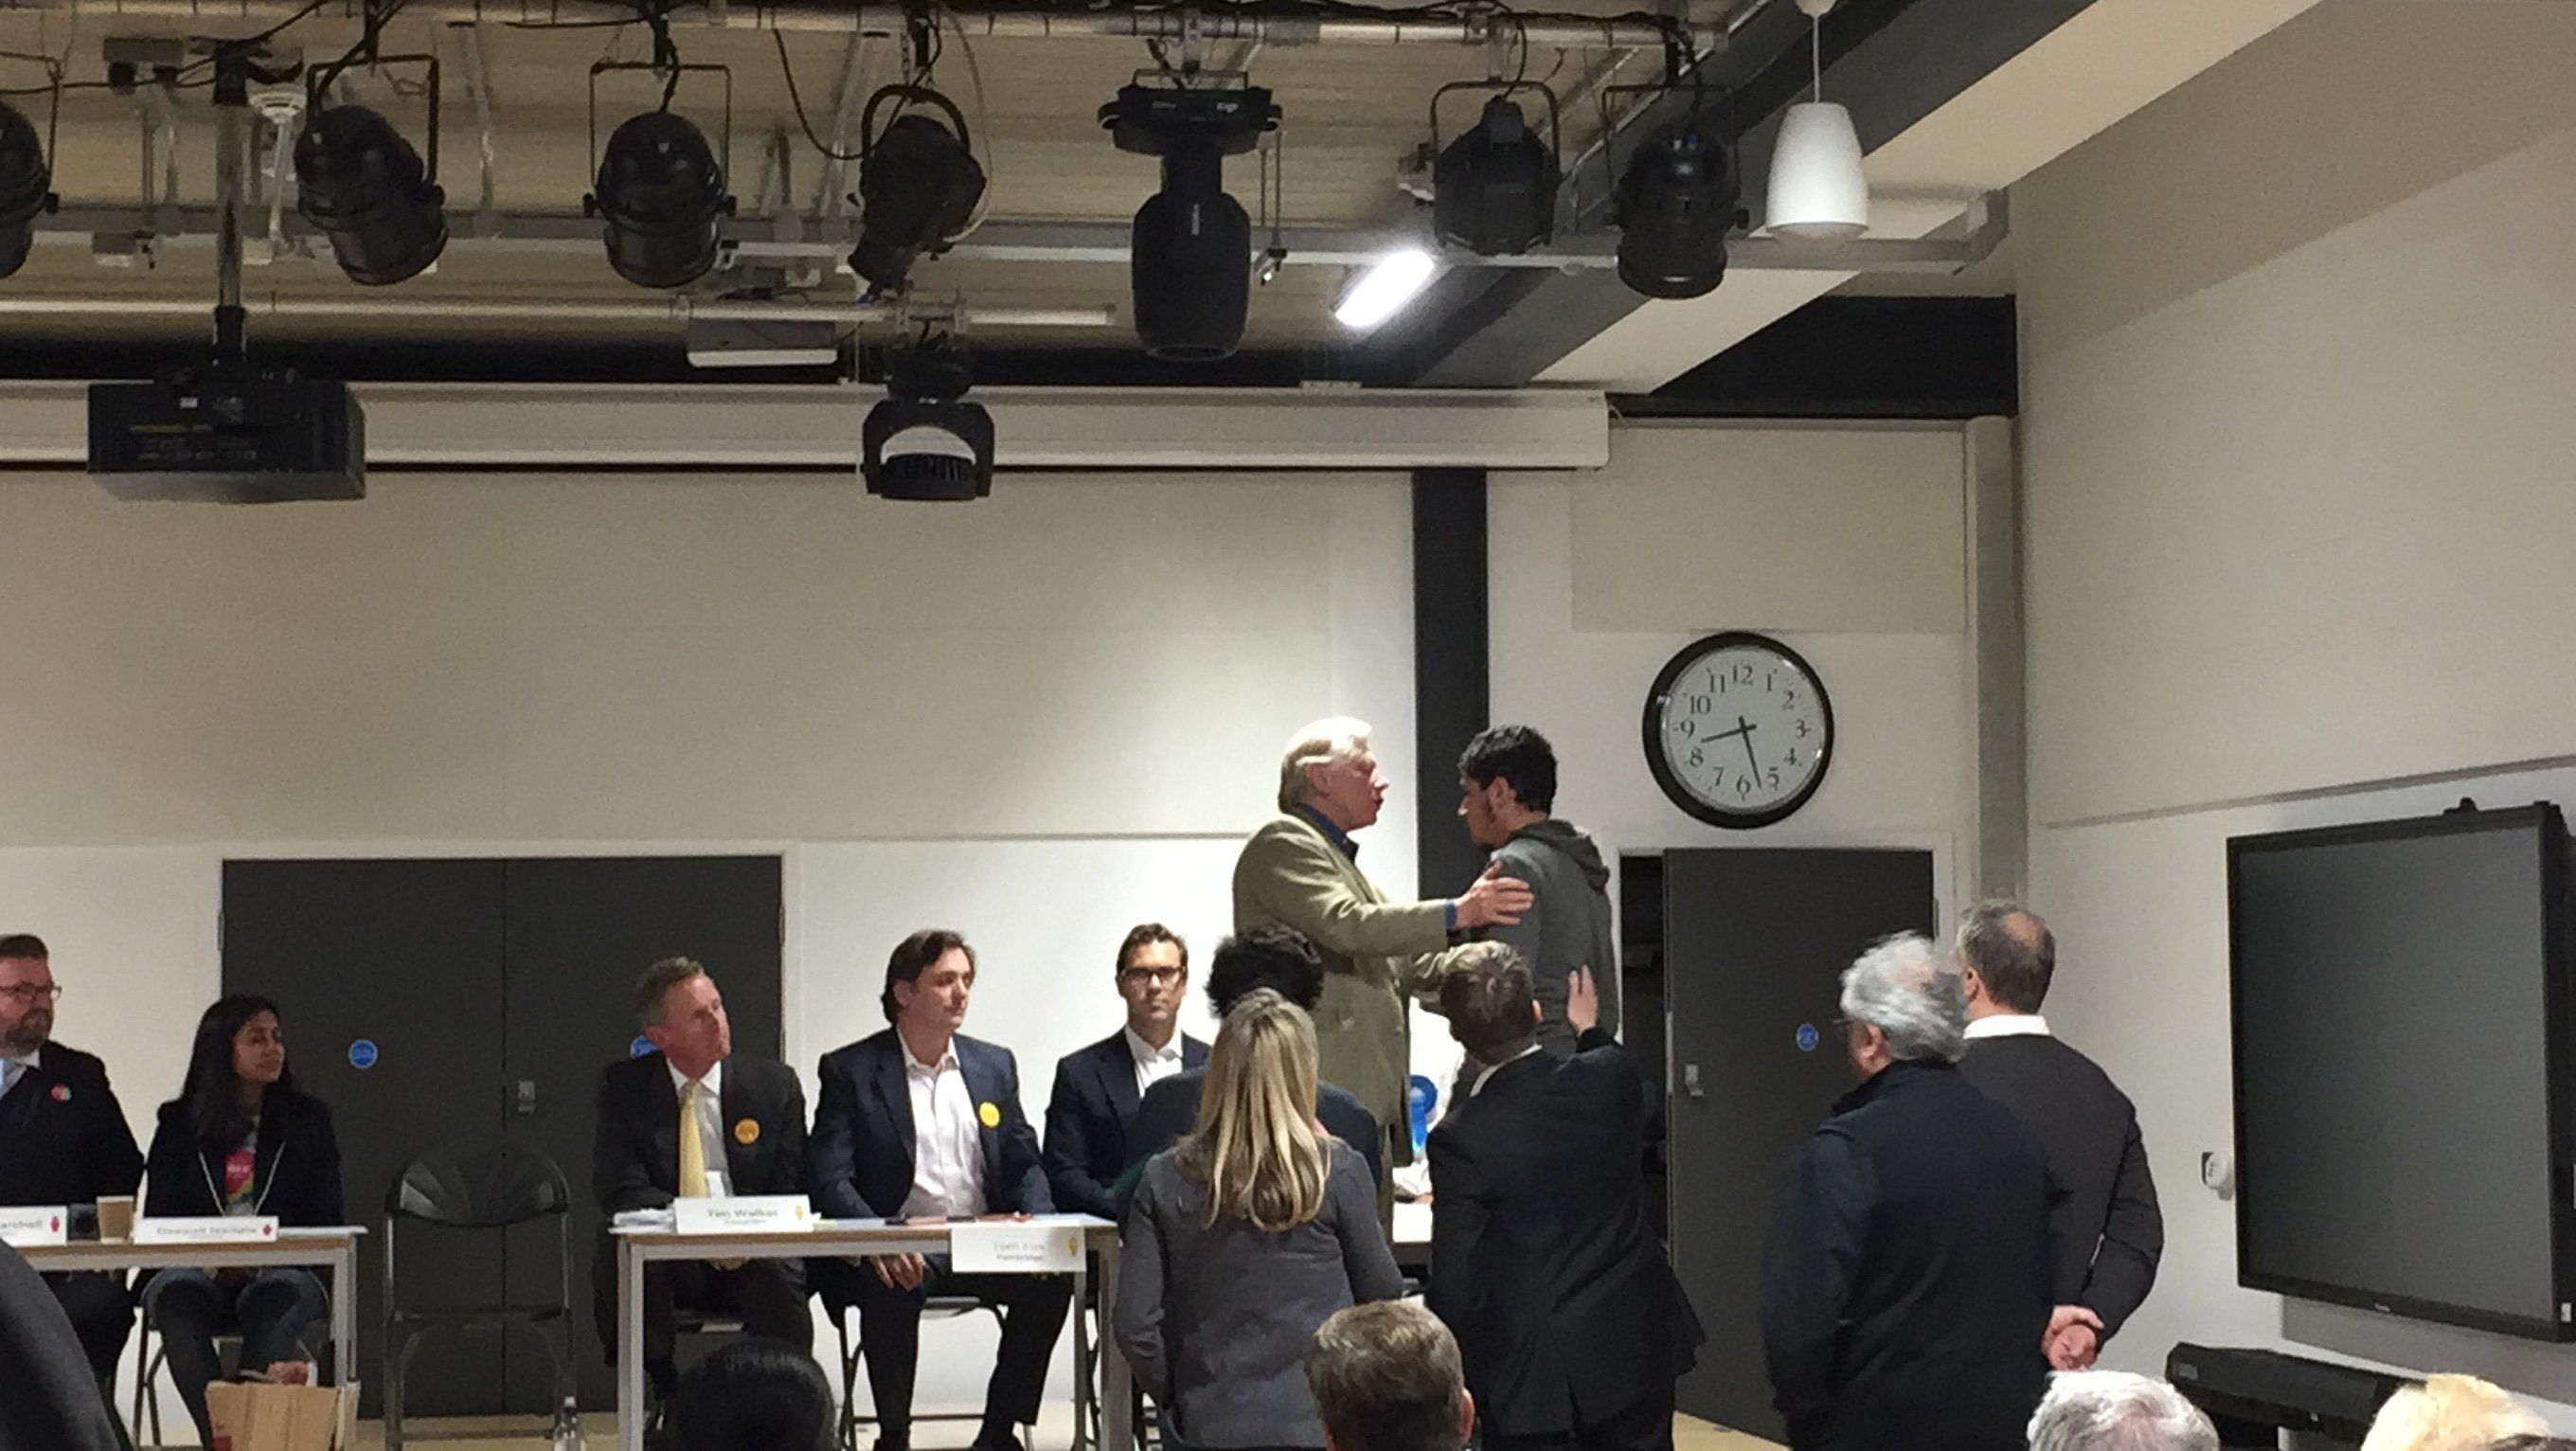 Grenfell Council Hustings Disrupted After Relative Of Victims Storms Stage To Confront Tory